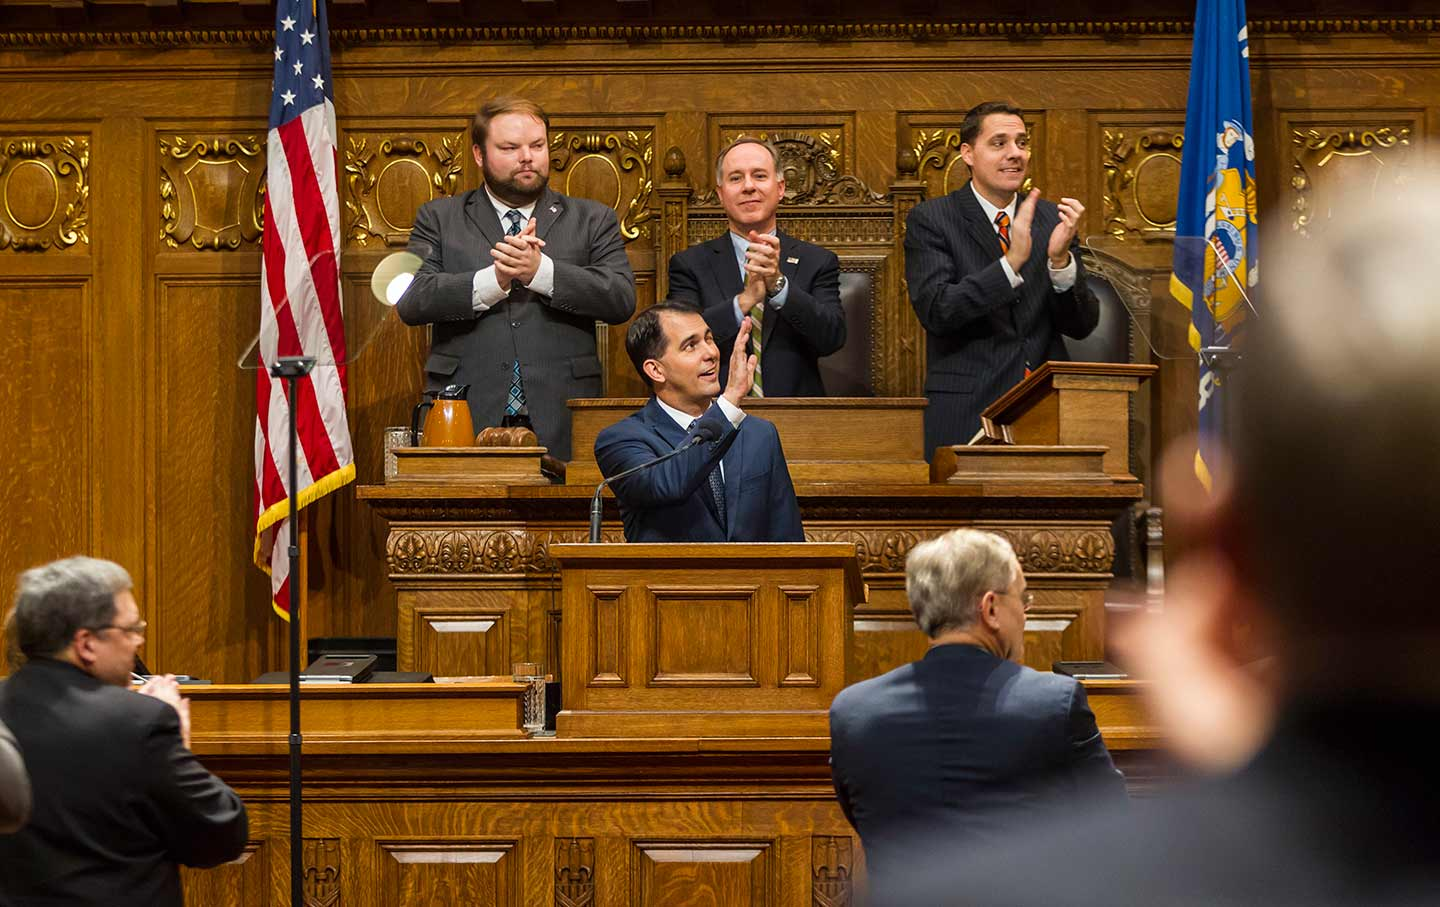 Scott Walker State Legislature